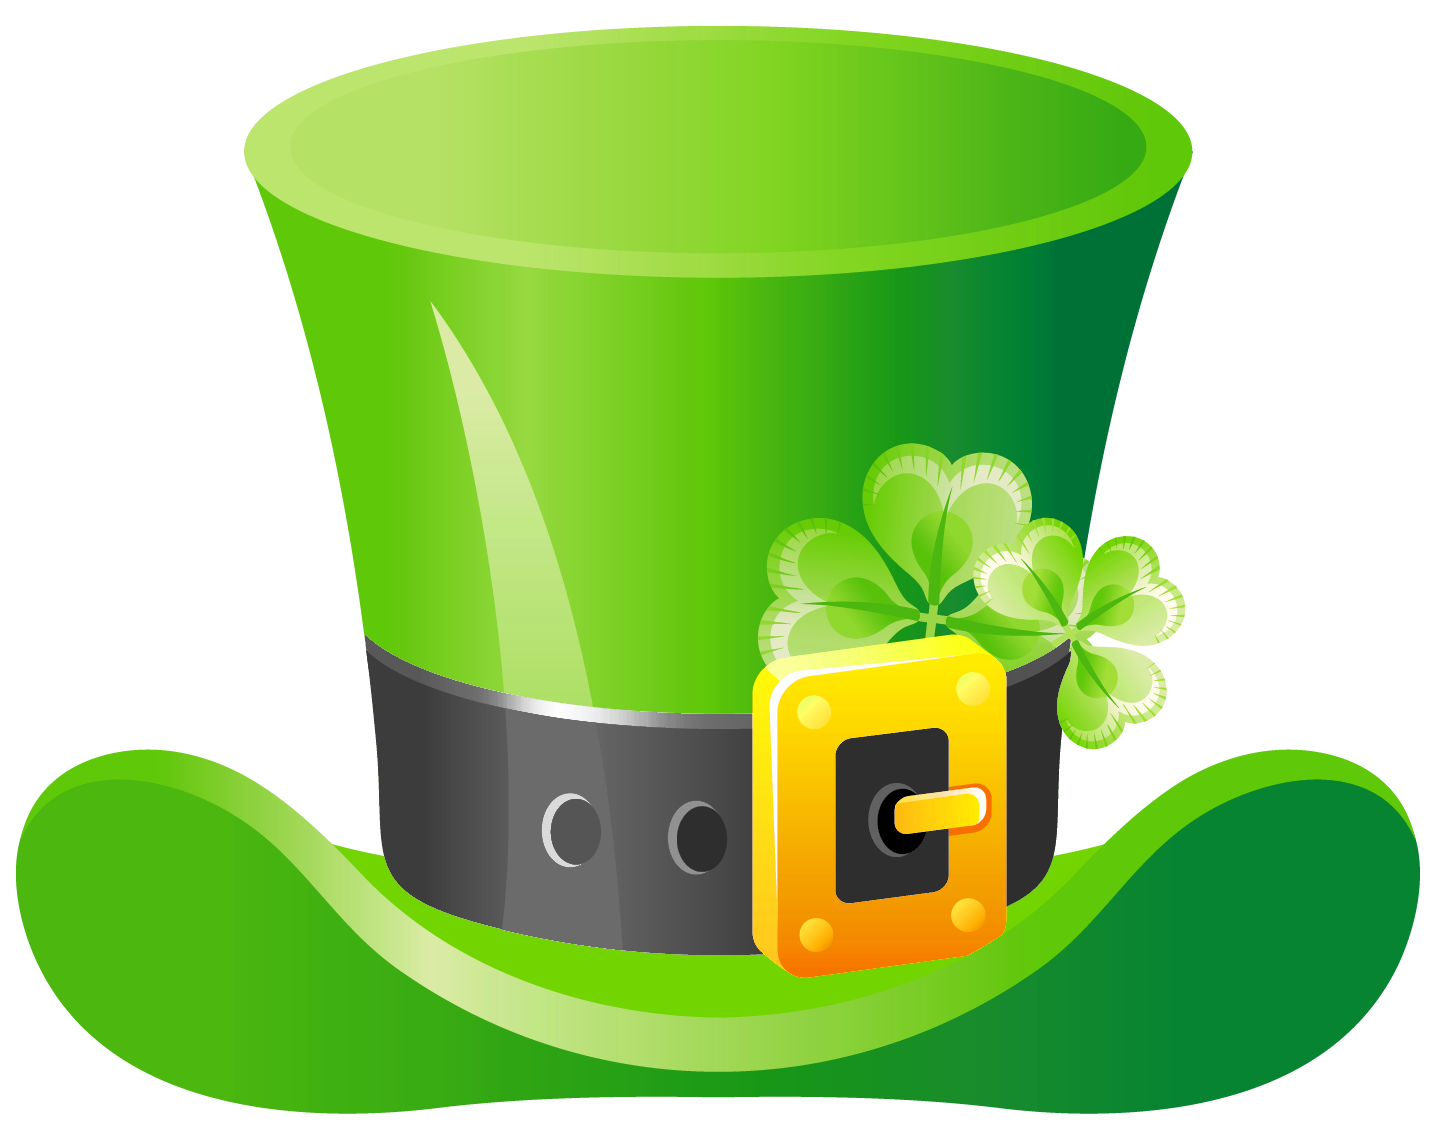 1440x1136 Promising Free St Patricks Day Clipart St Patricks Day Images